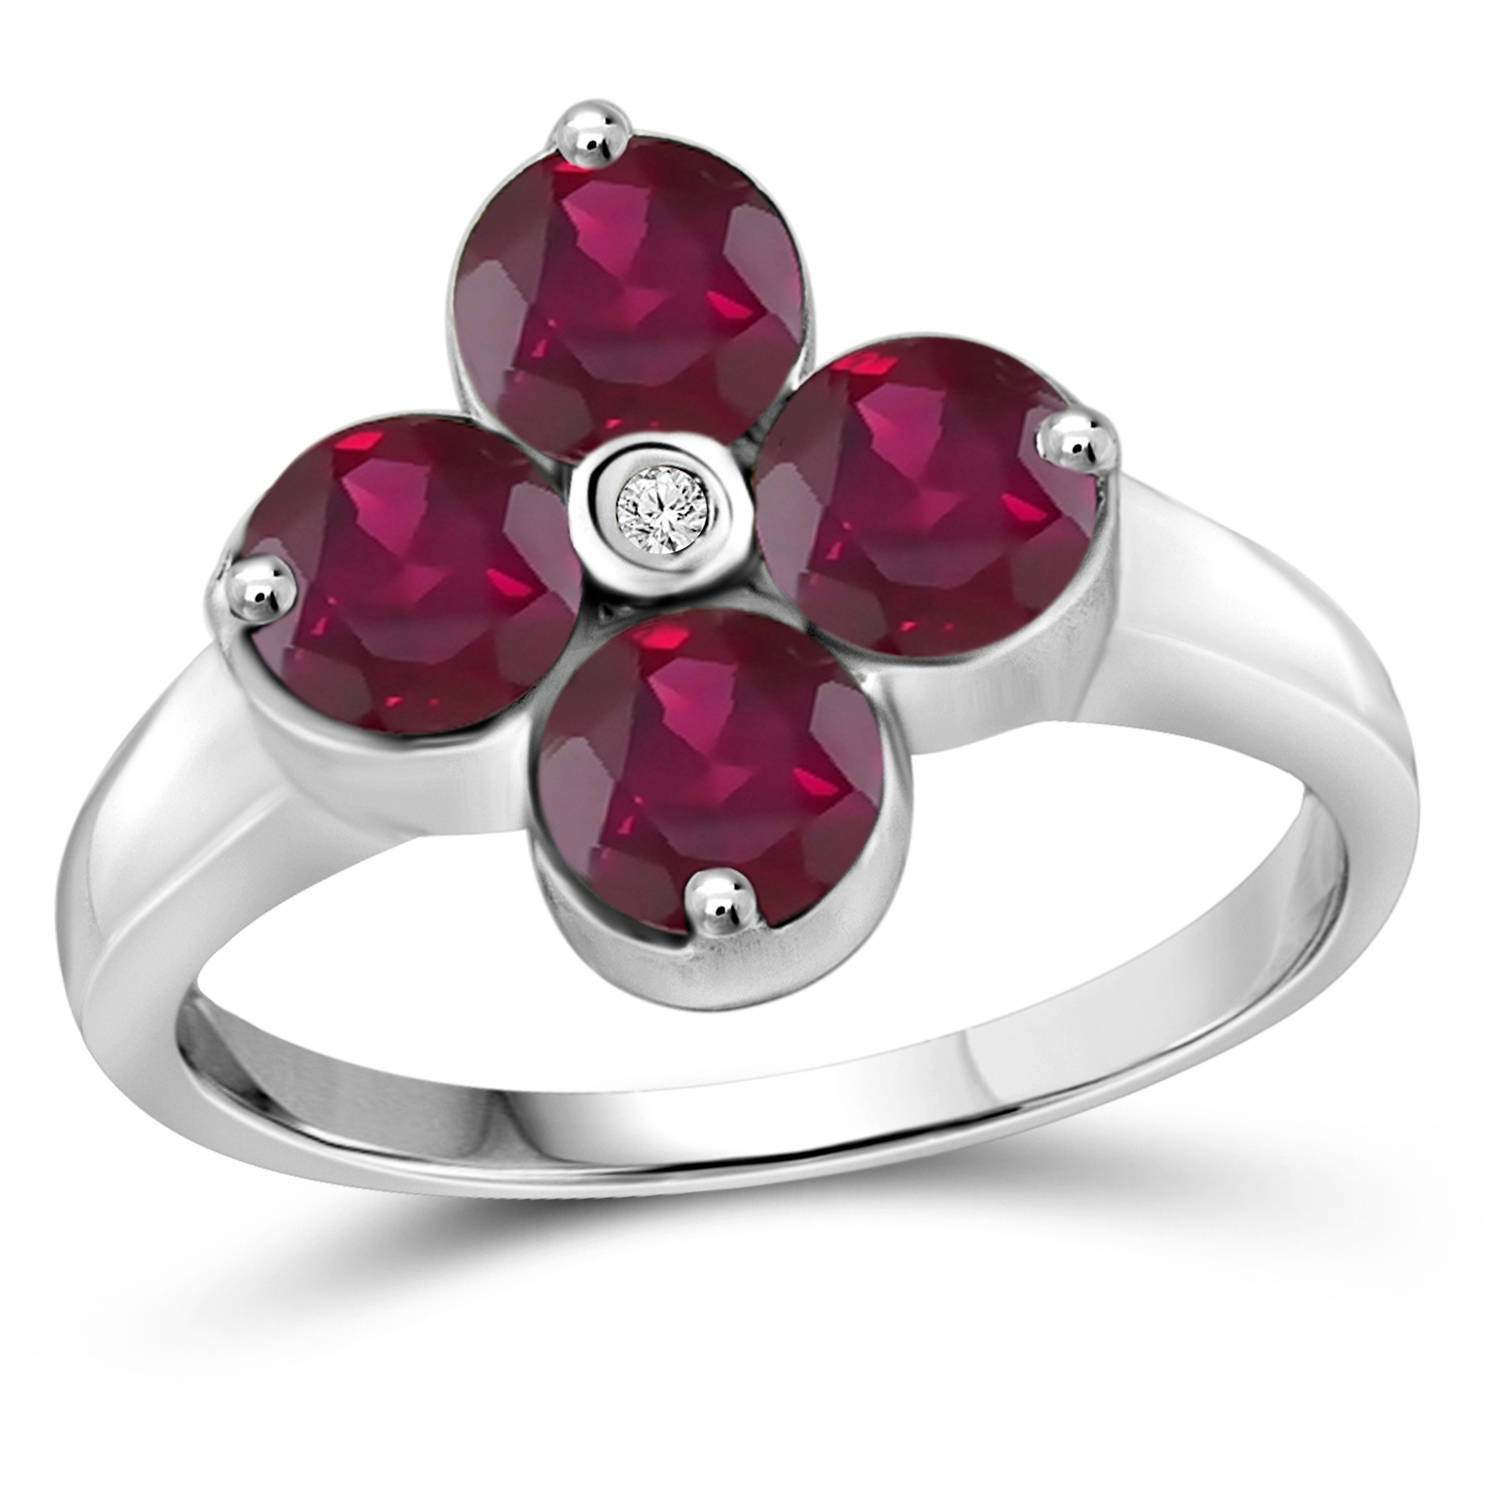 JewelersClub 2.72 Carat T.G.W. Ruby Gemstone and White Diamond Accent Sterling Silver Ring by JewelersClub